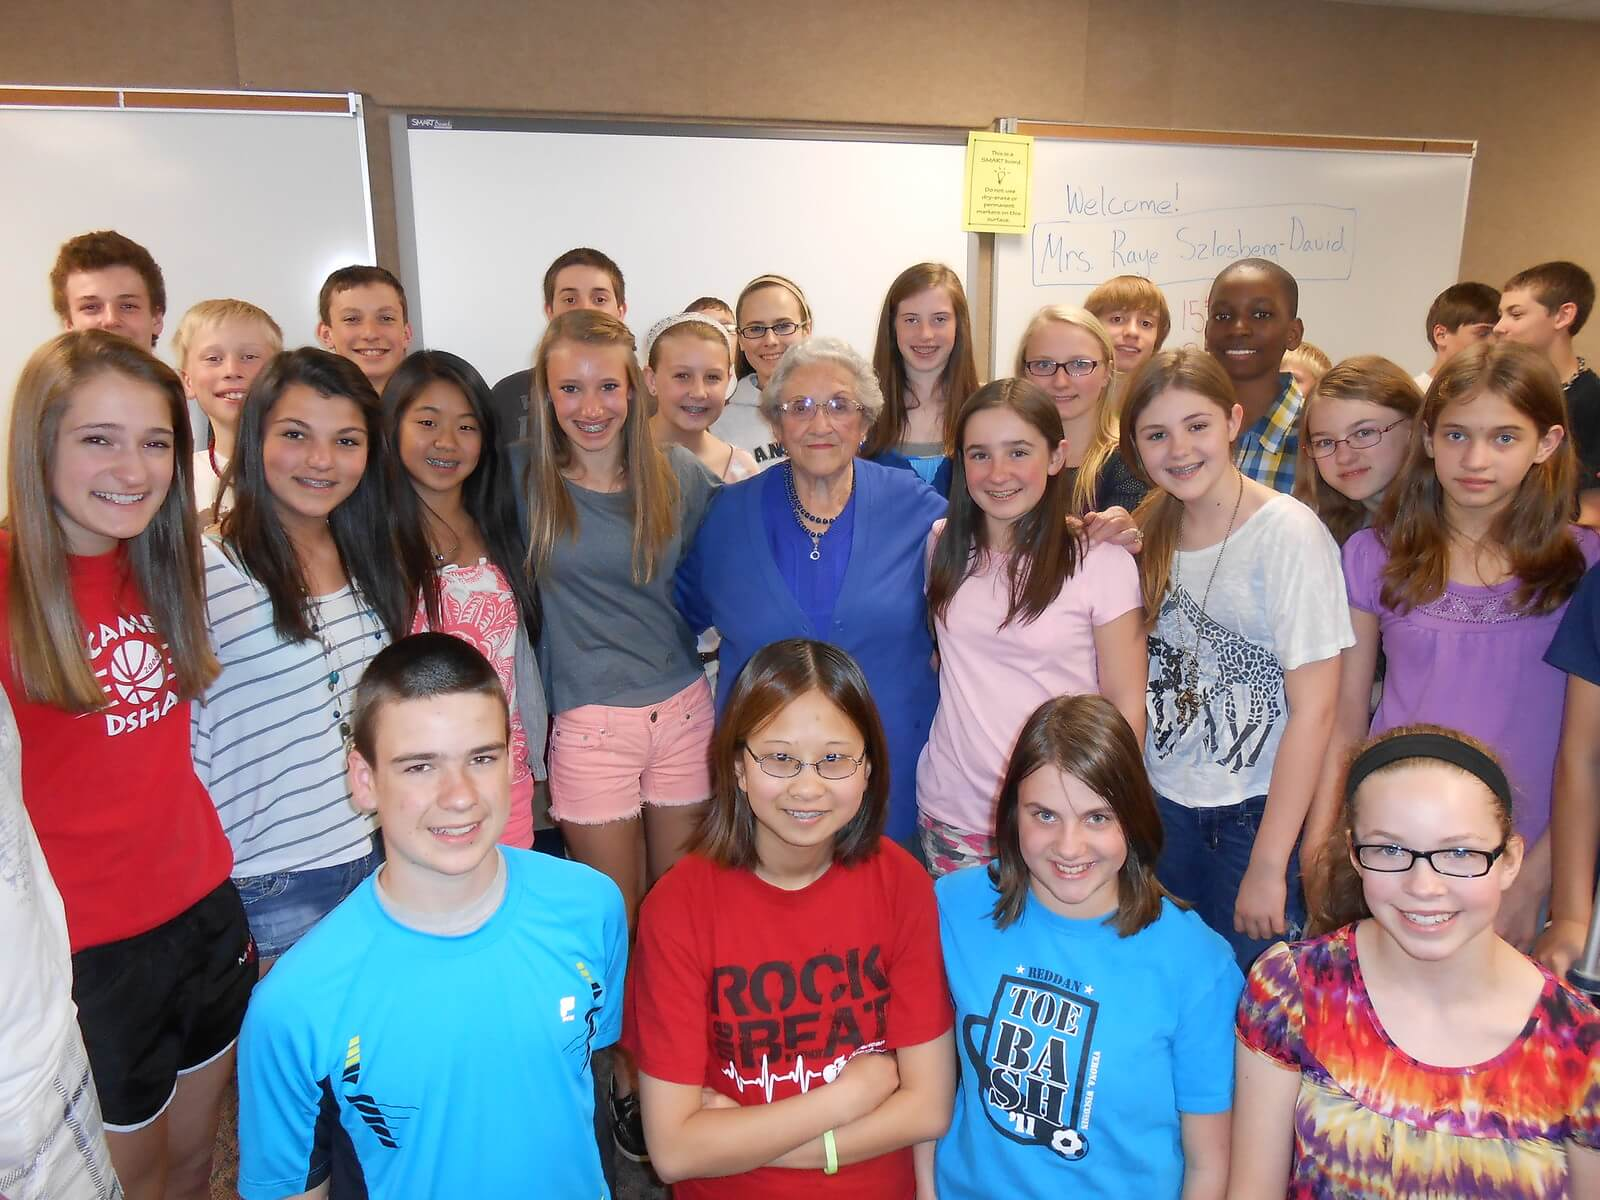 Raye David (center) from the Speakers Bureau of the Holocaust Education Resource Center (HERC)/Wisconsin Examiner.